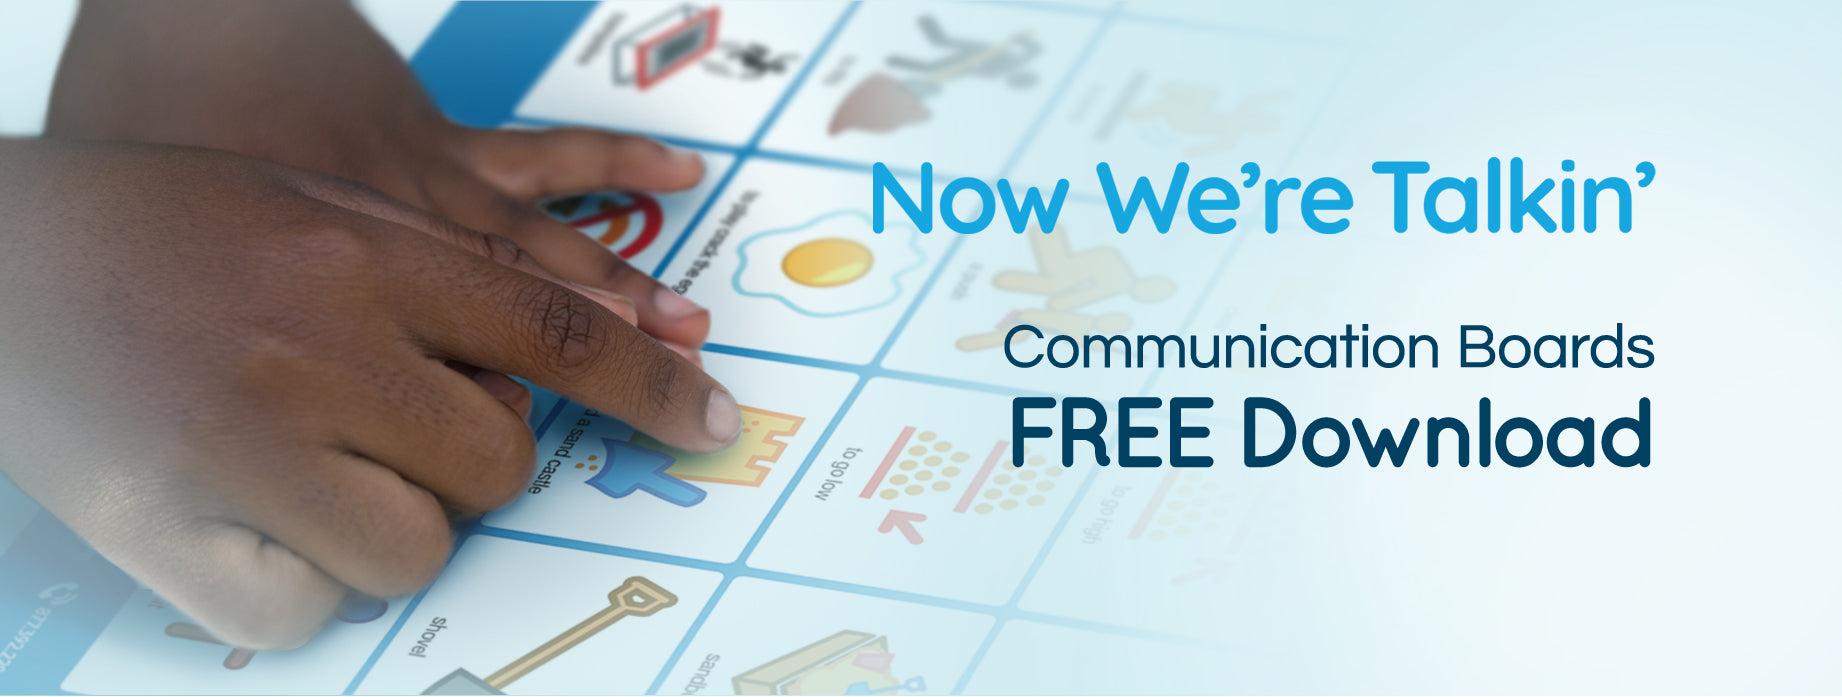 Communication Boards - Free Download